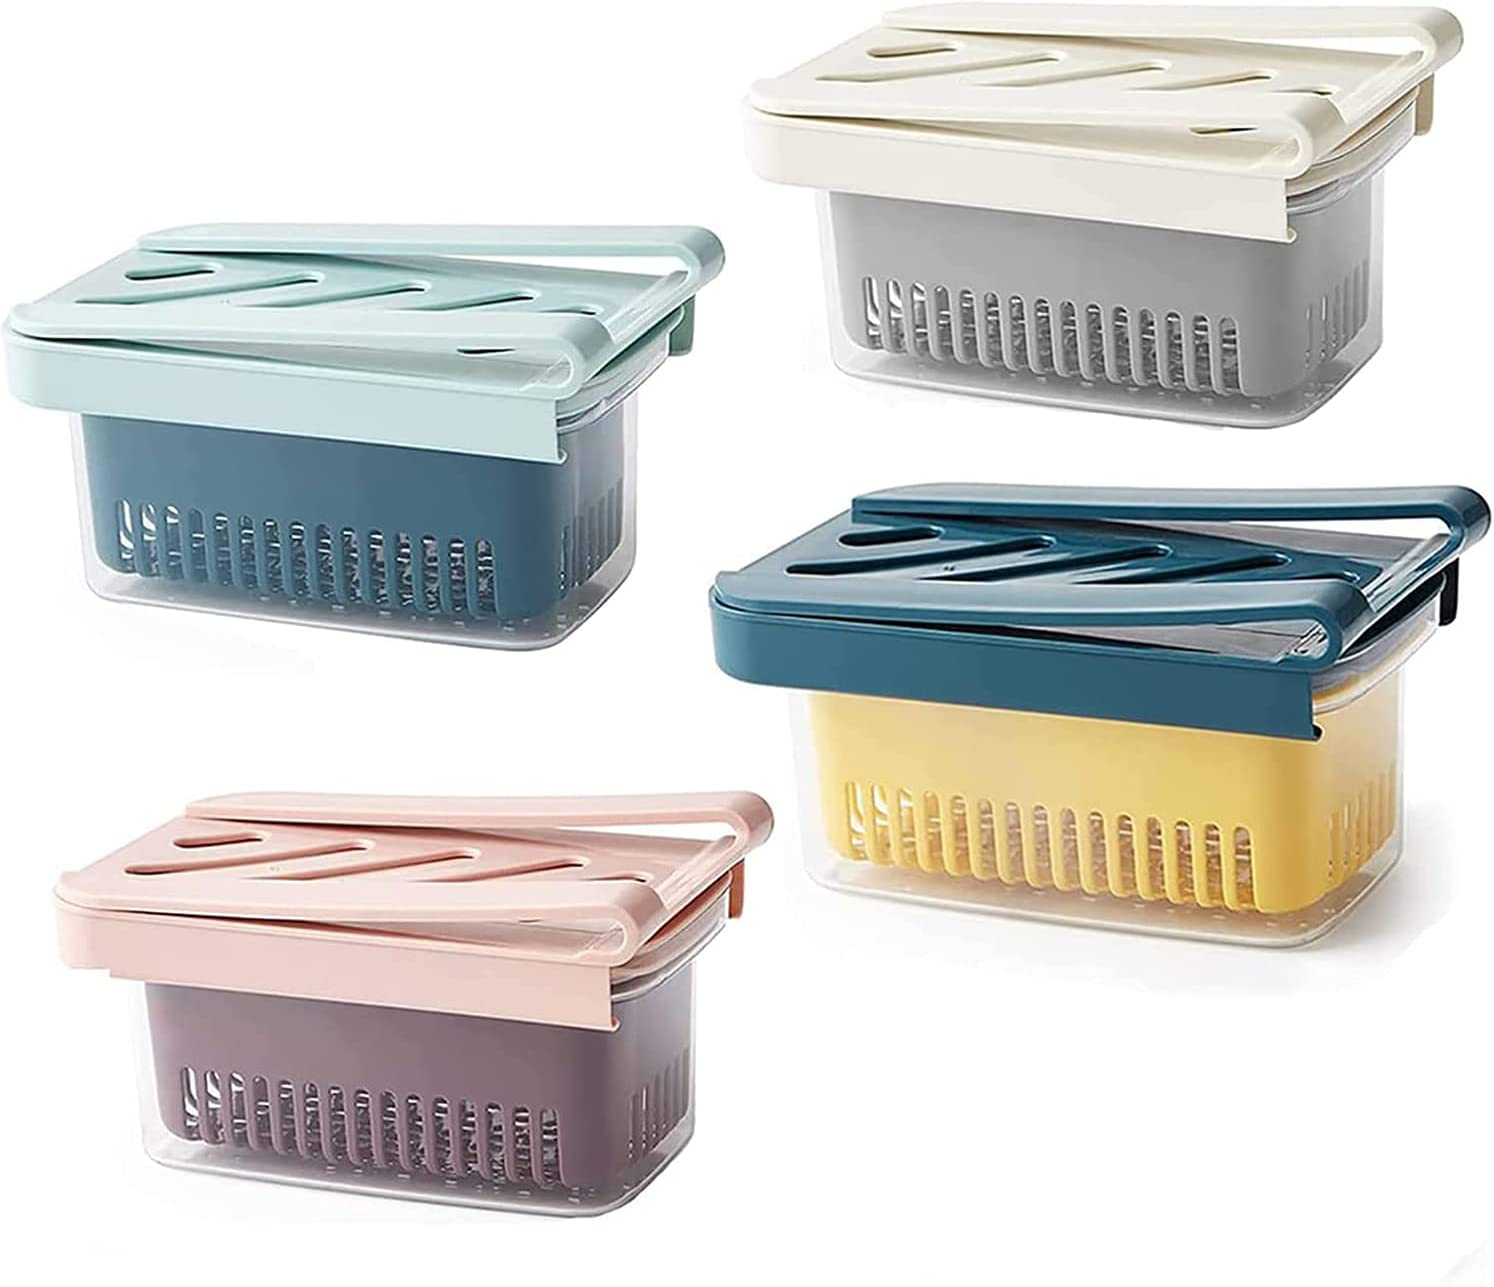 HEWANG Inexpensive Multifunction Refrigerator Storage Box Pull Fridge Out Dr Store